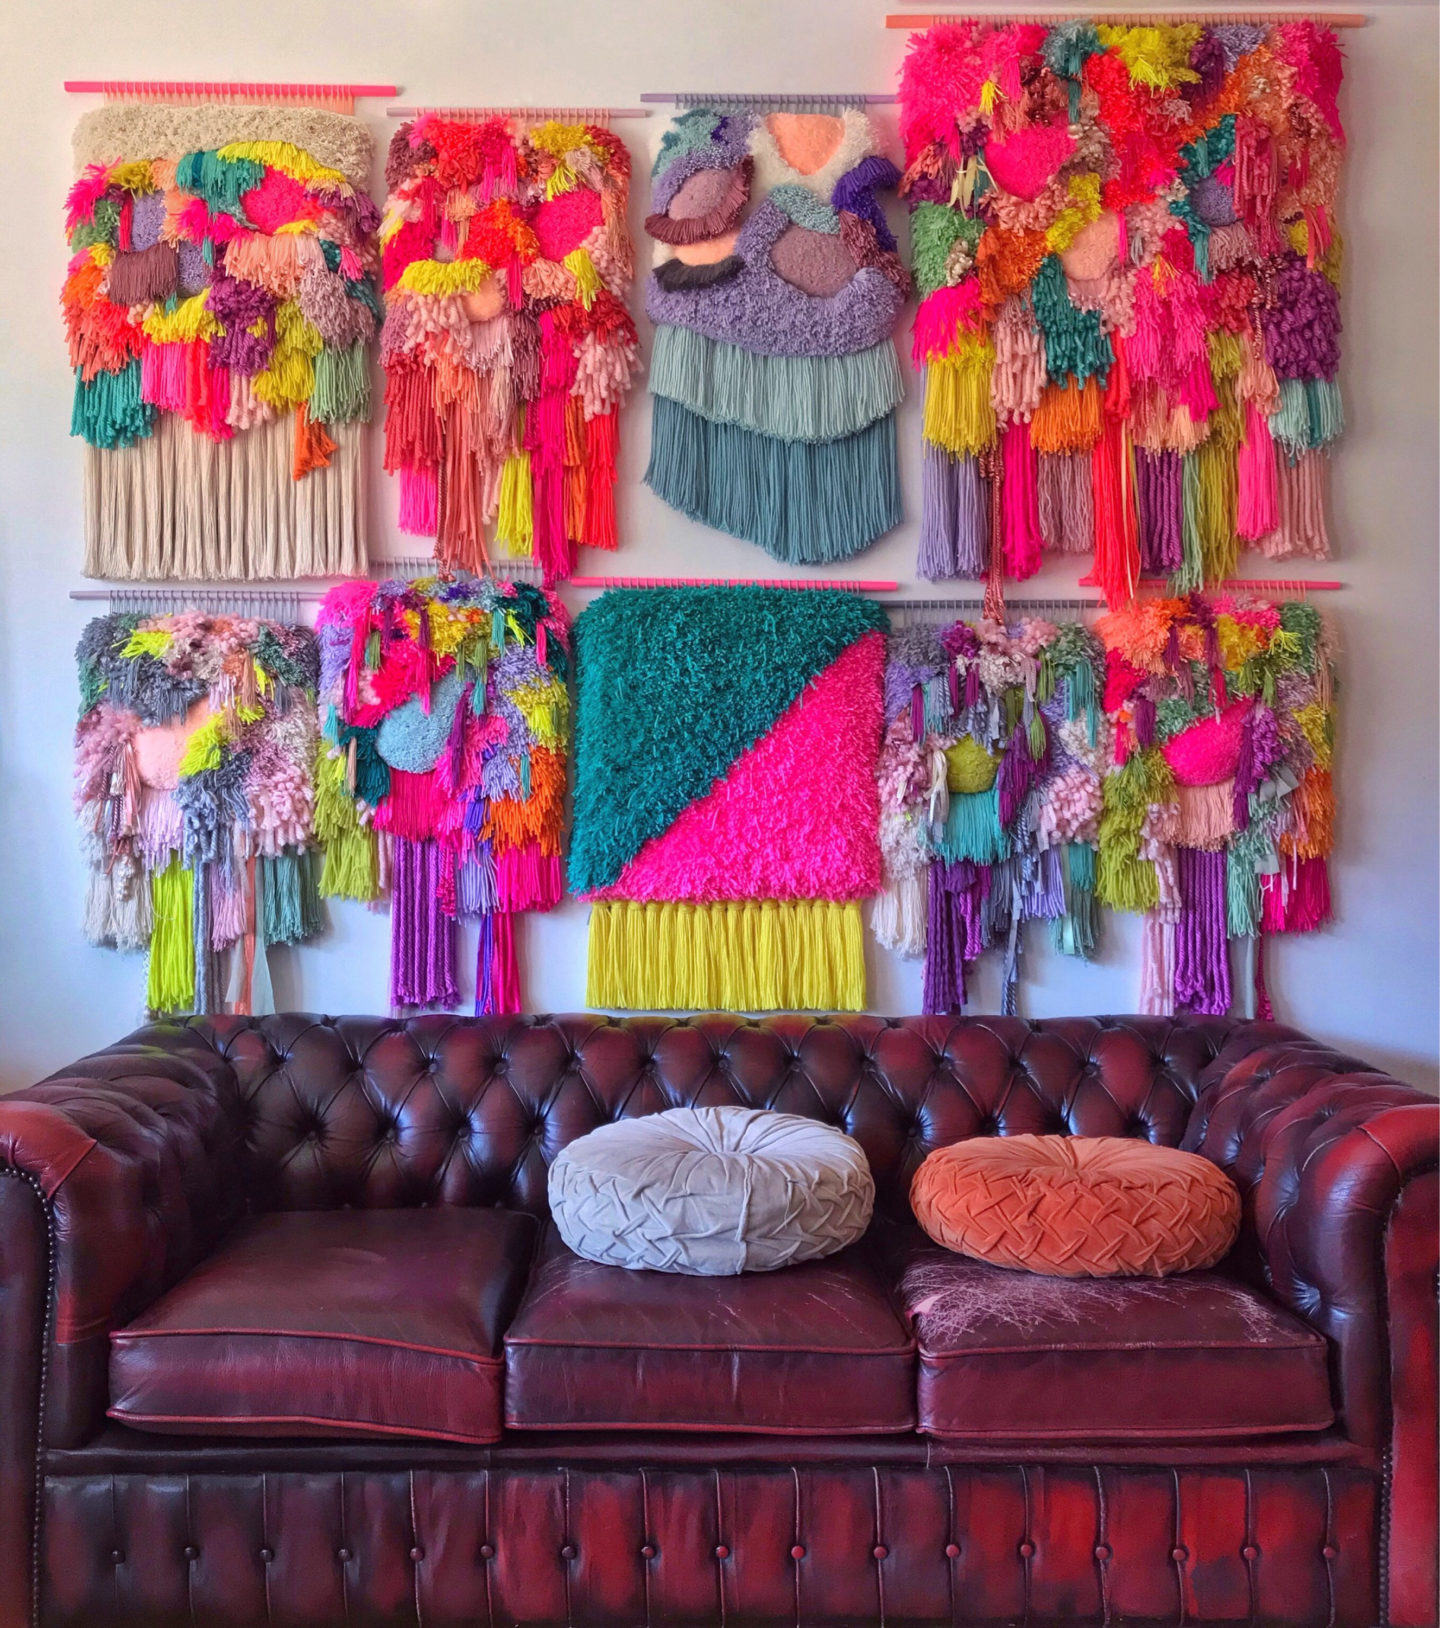 9 Etsy Shops For Incredible, Modern Textile Wall Art